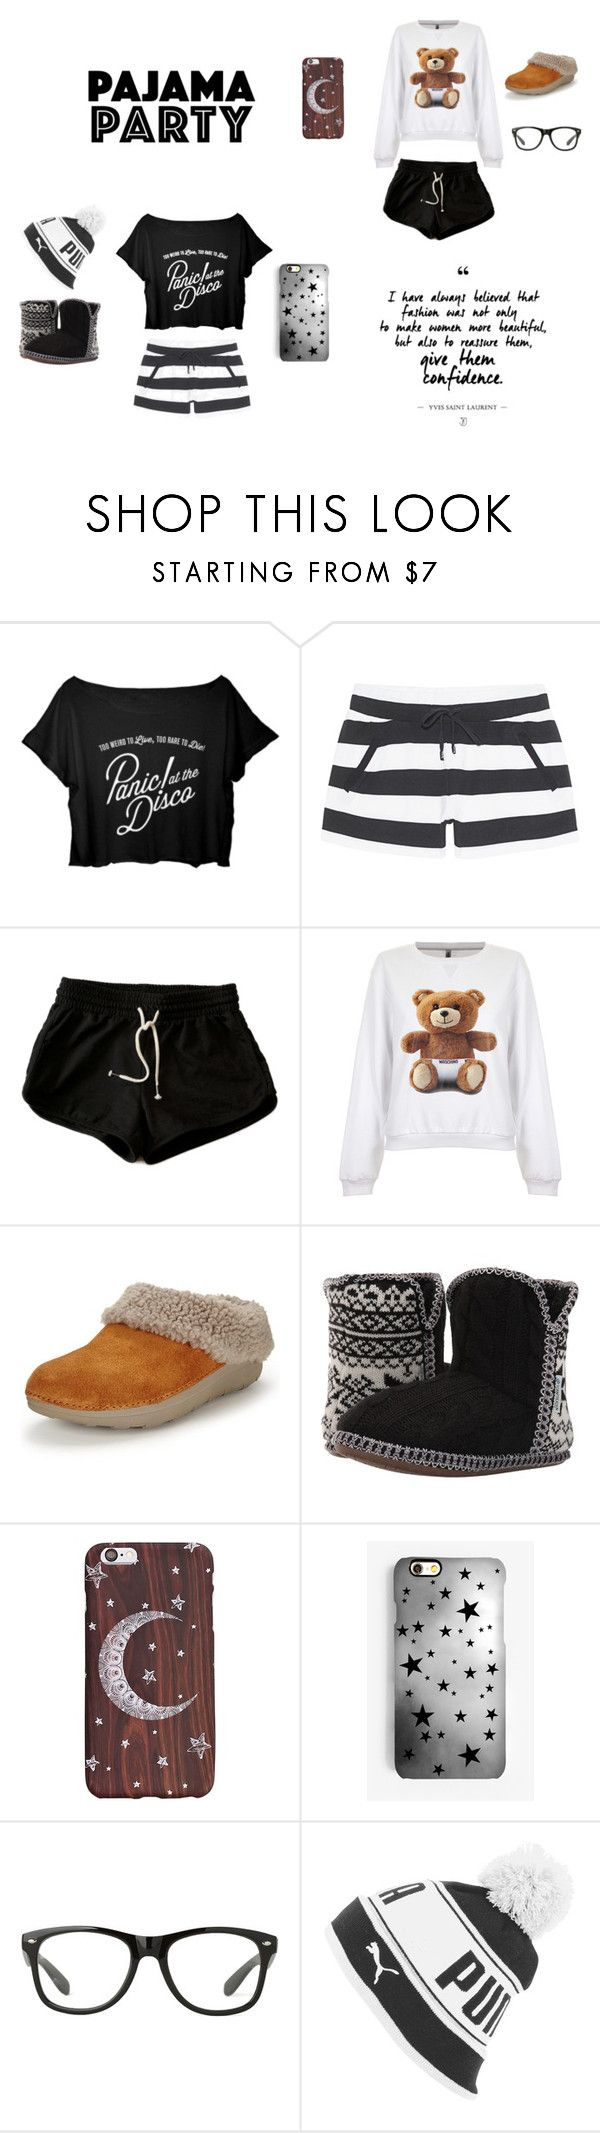 """""""Pajama Party"""" by saugandhinys on Polyvore featuring Juvia, Moschino, FitFlop, Foamtreads, Rianna Phillips and Puma"""